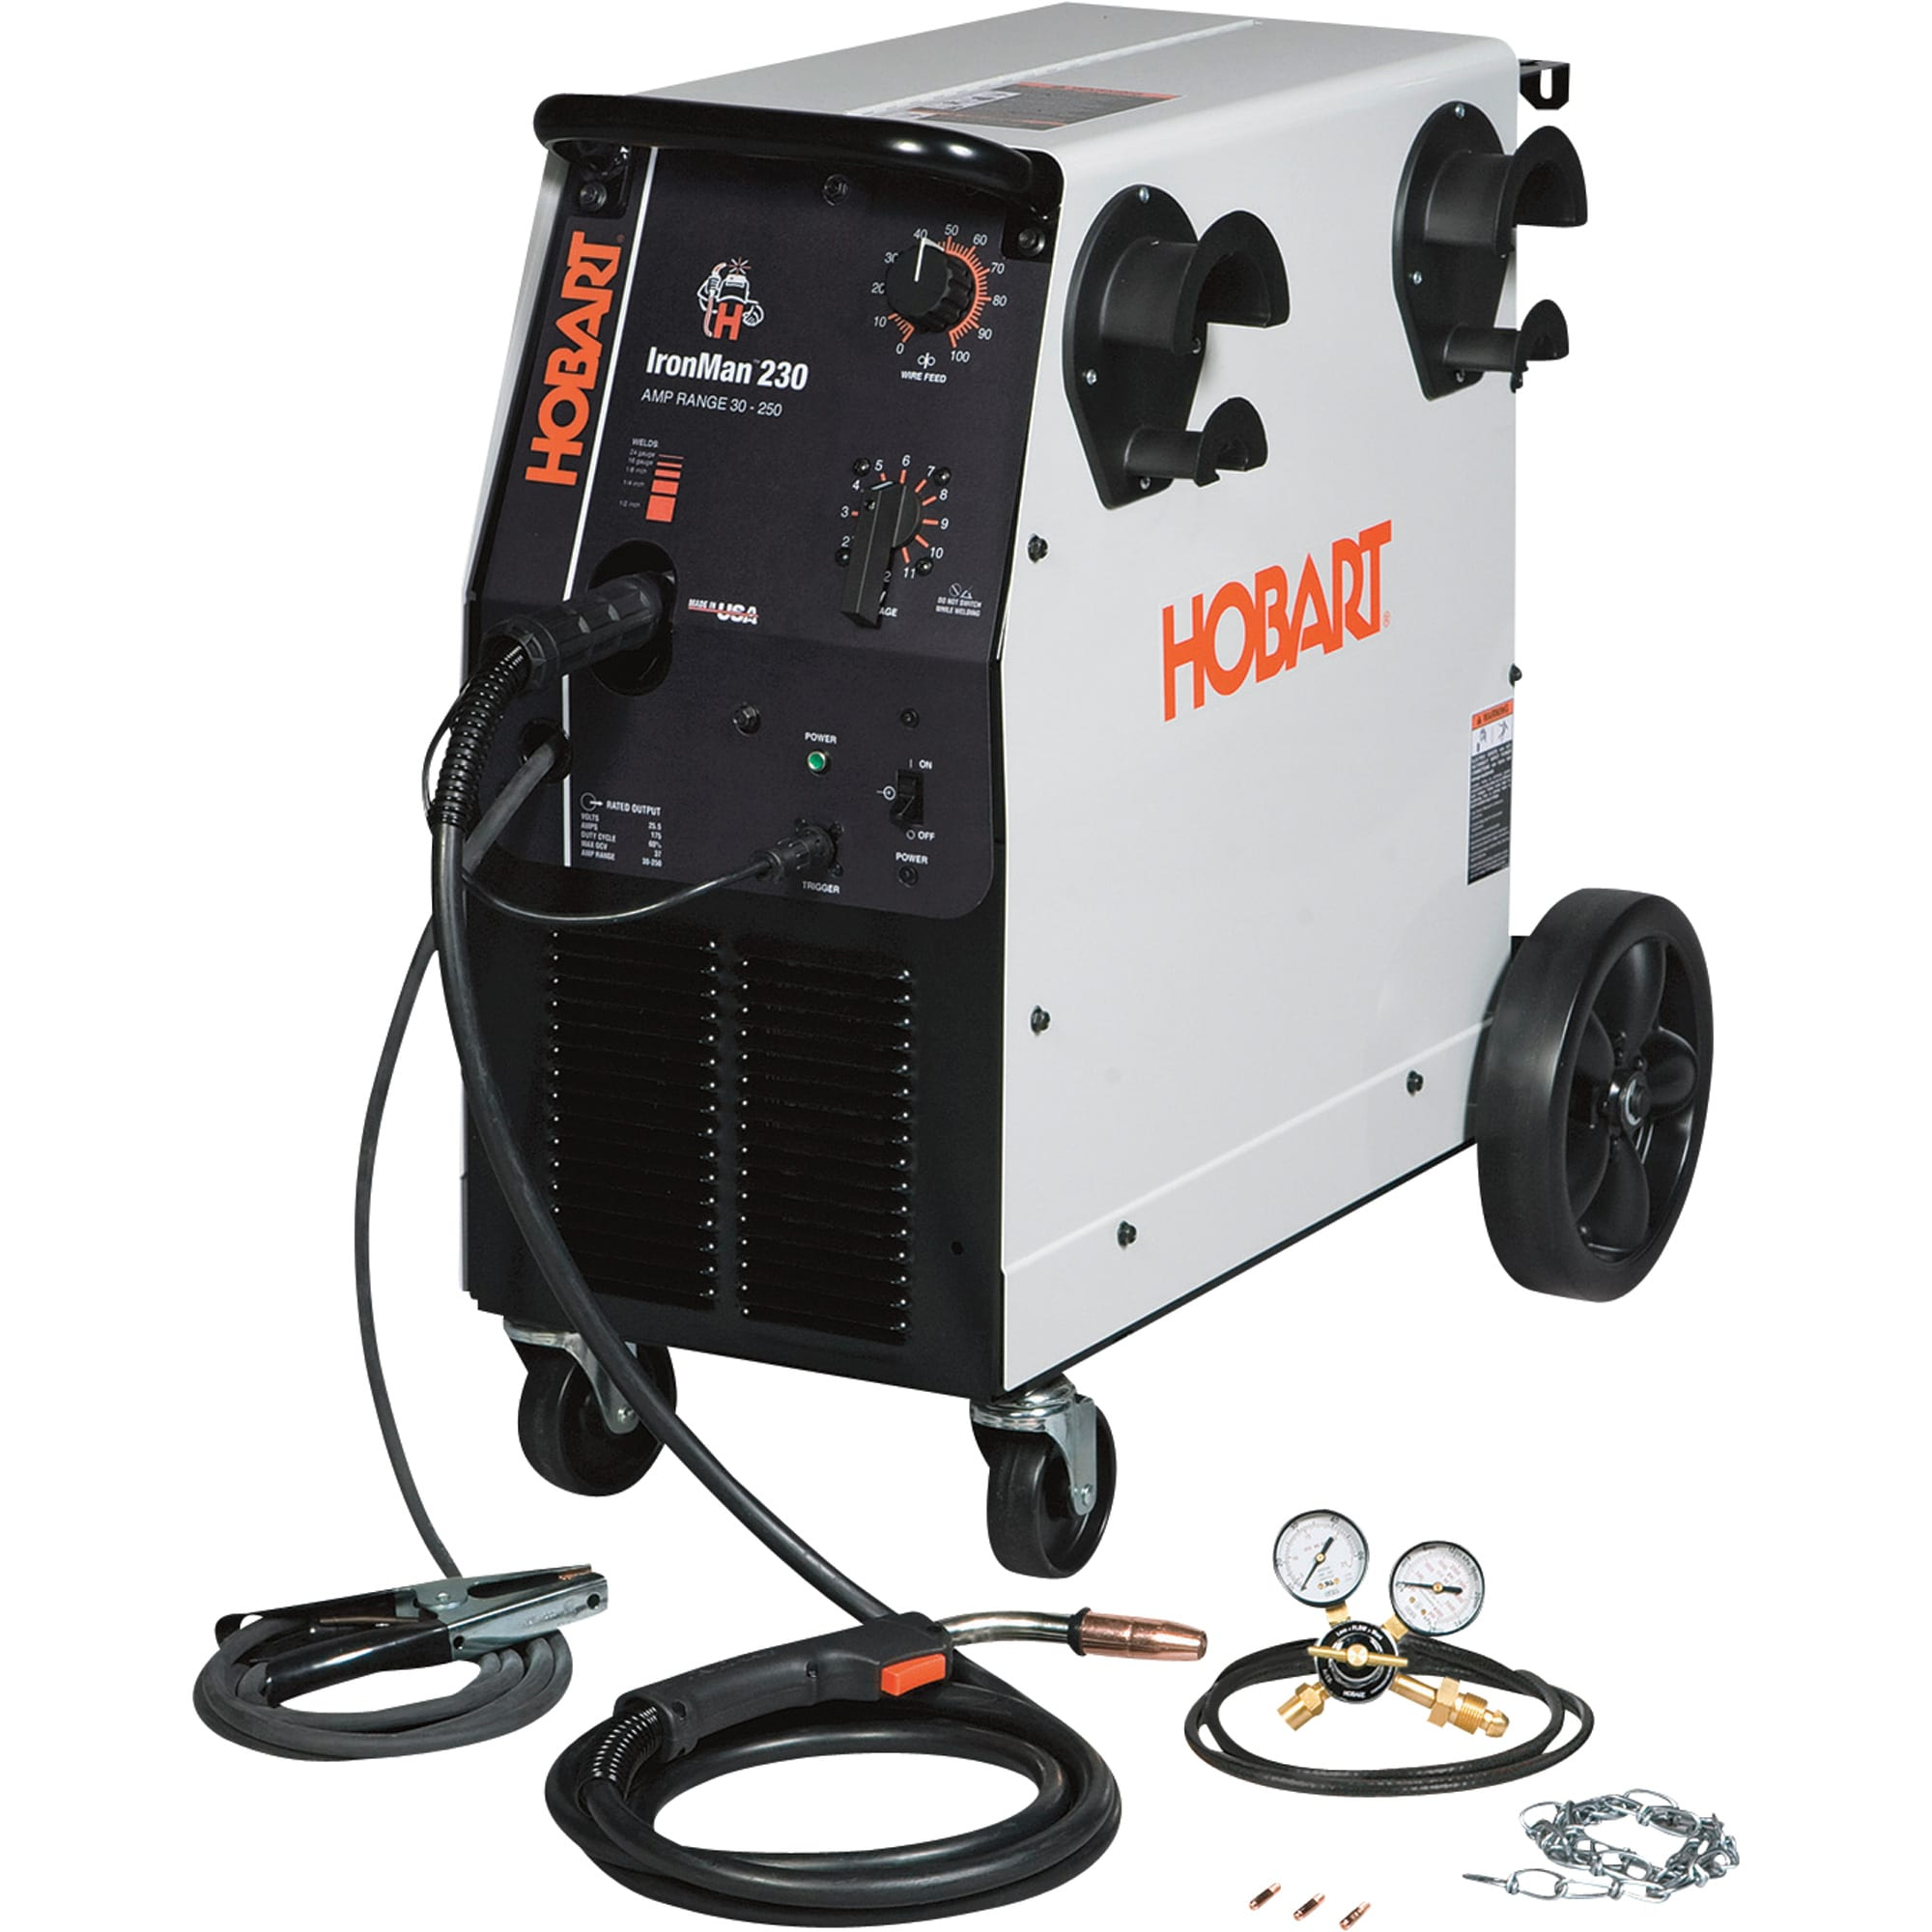 Hobart Ironman 230 MIG Welder Reviews 2 make a hobby your profession with the best welder with hobart hobart beta mig 250 wiring diagrams at soozxer.org